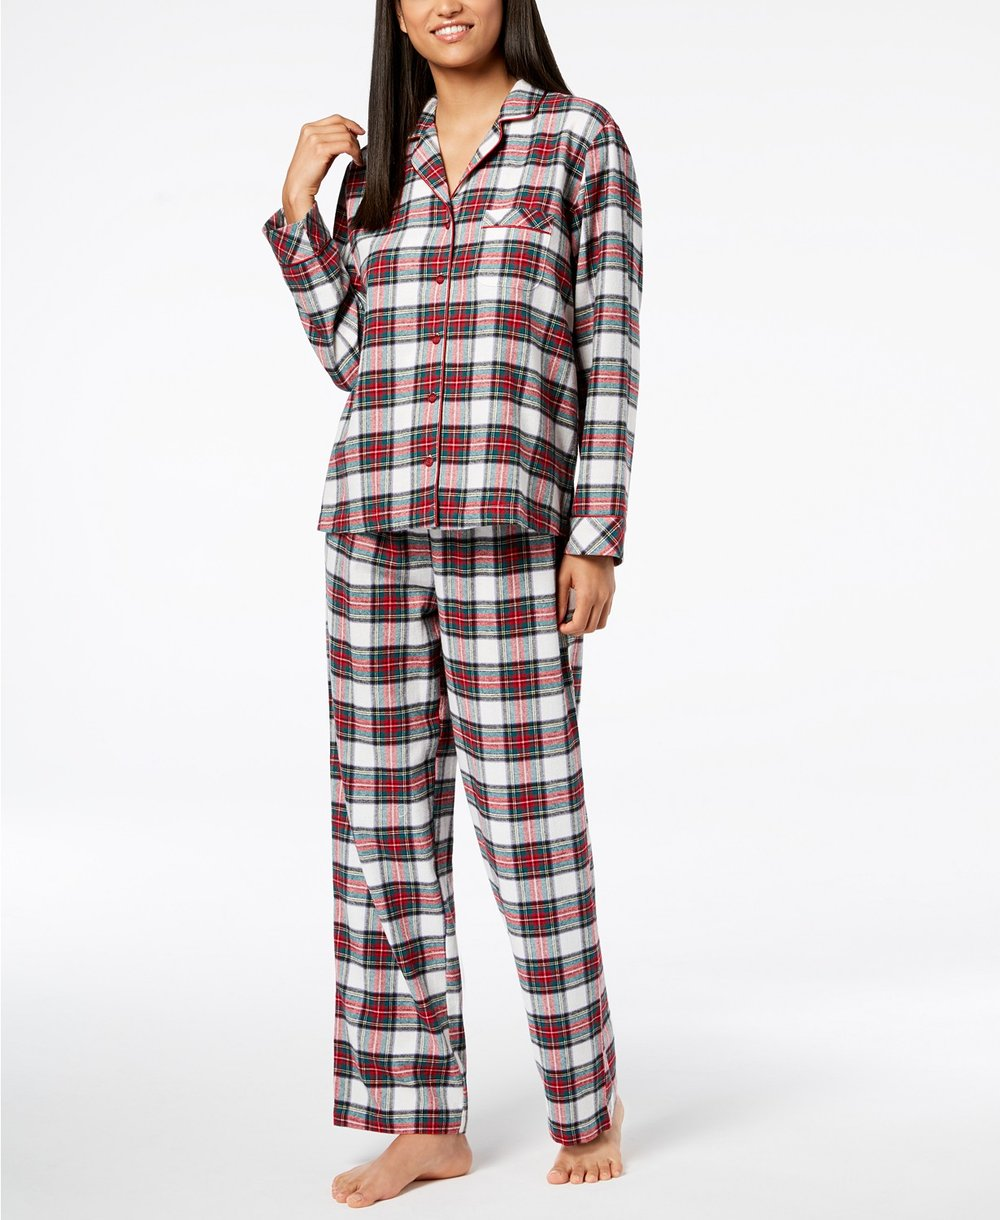 plaid holiday pajamas